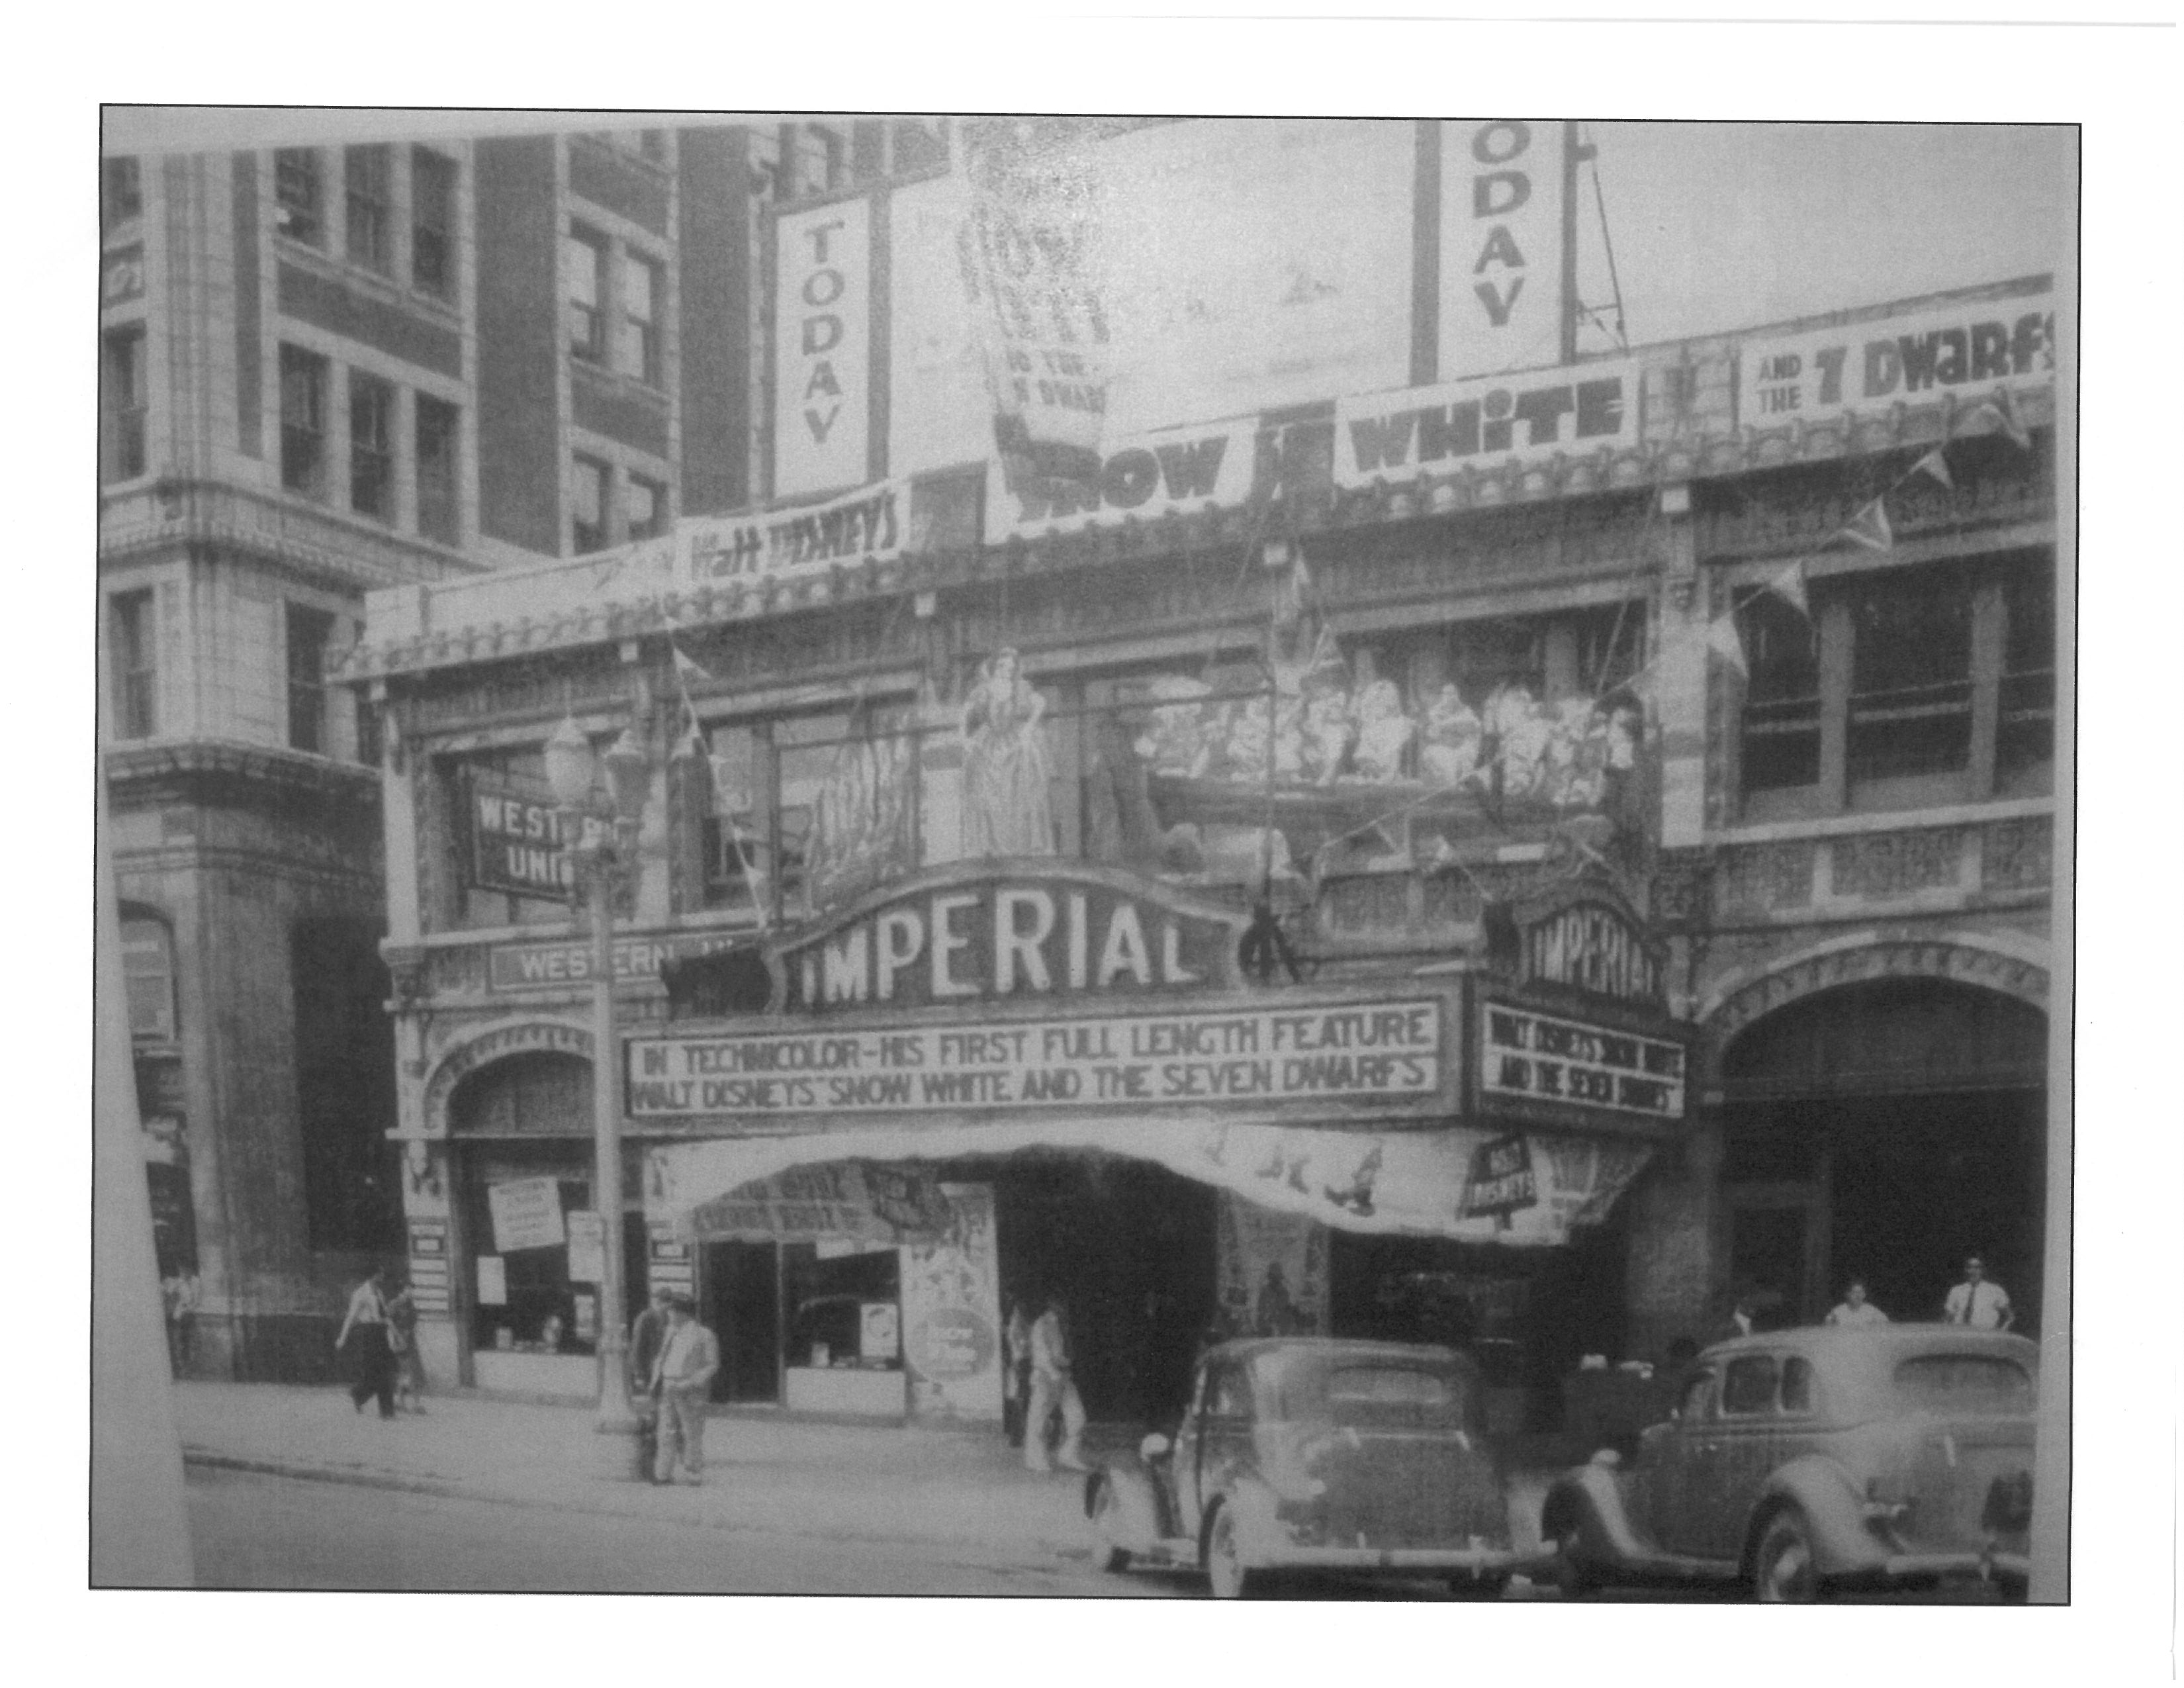 Original Marquee of Imperial Theater